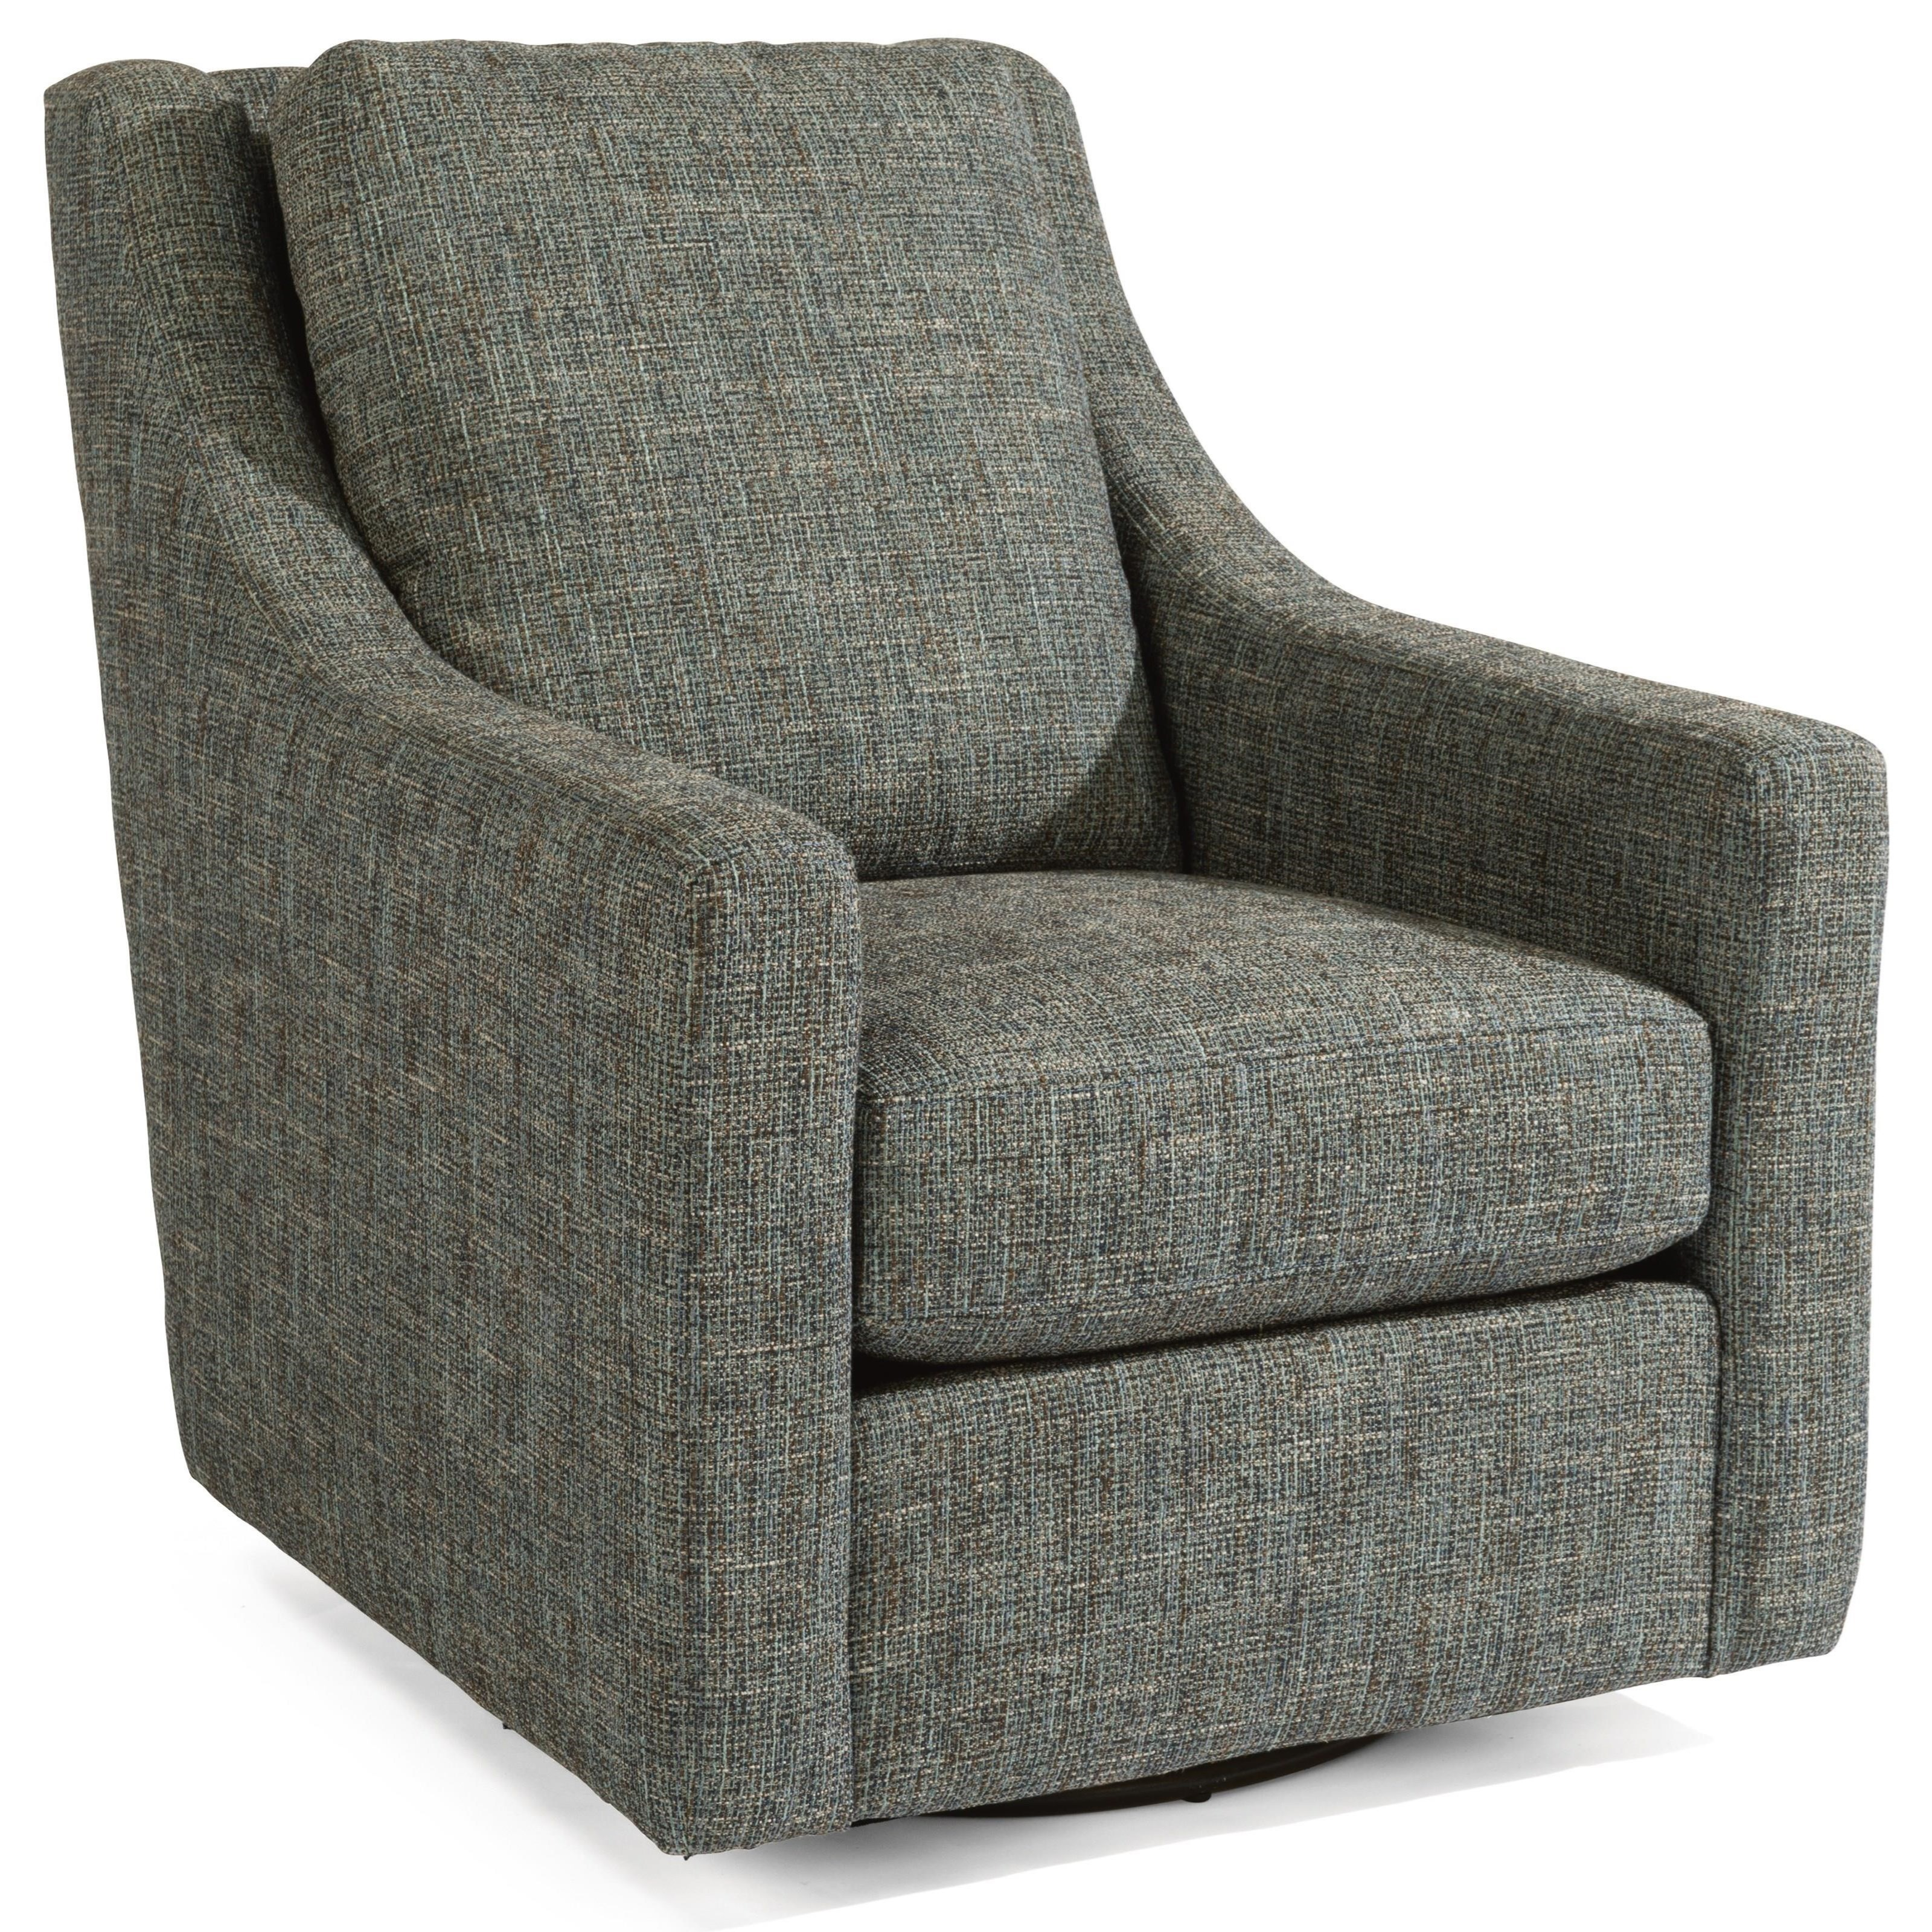 Flexsteel Murph Casual Contemporary Swivel Chair With Loose Pillow Back Sheely S Furniture Appliance Upholstered Chairs